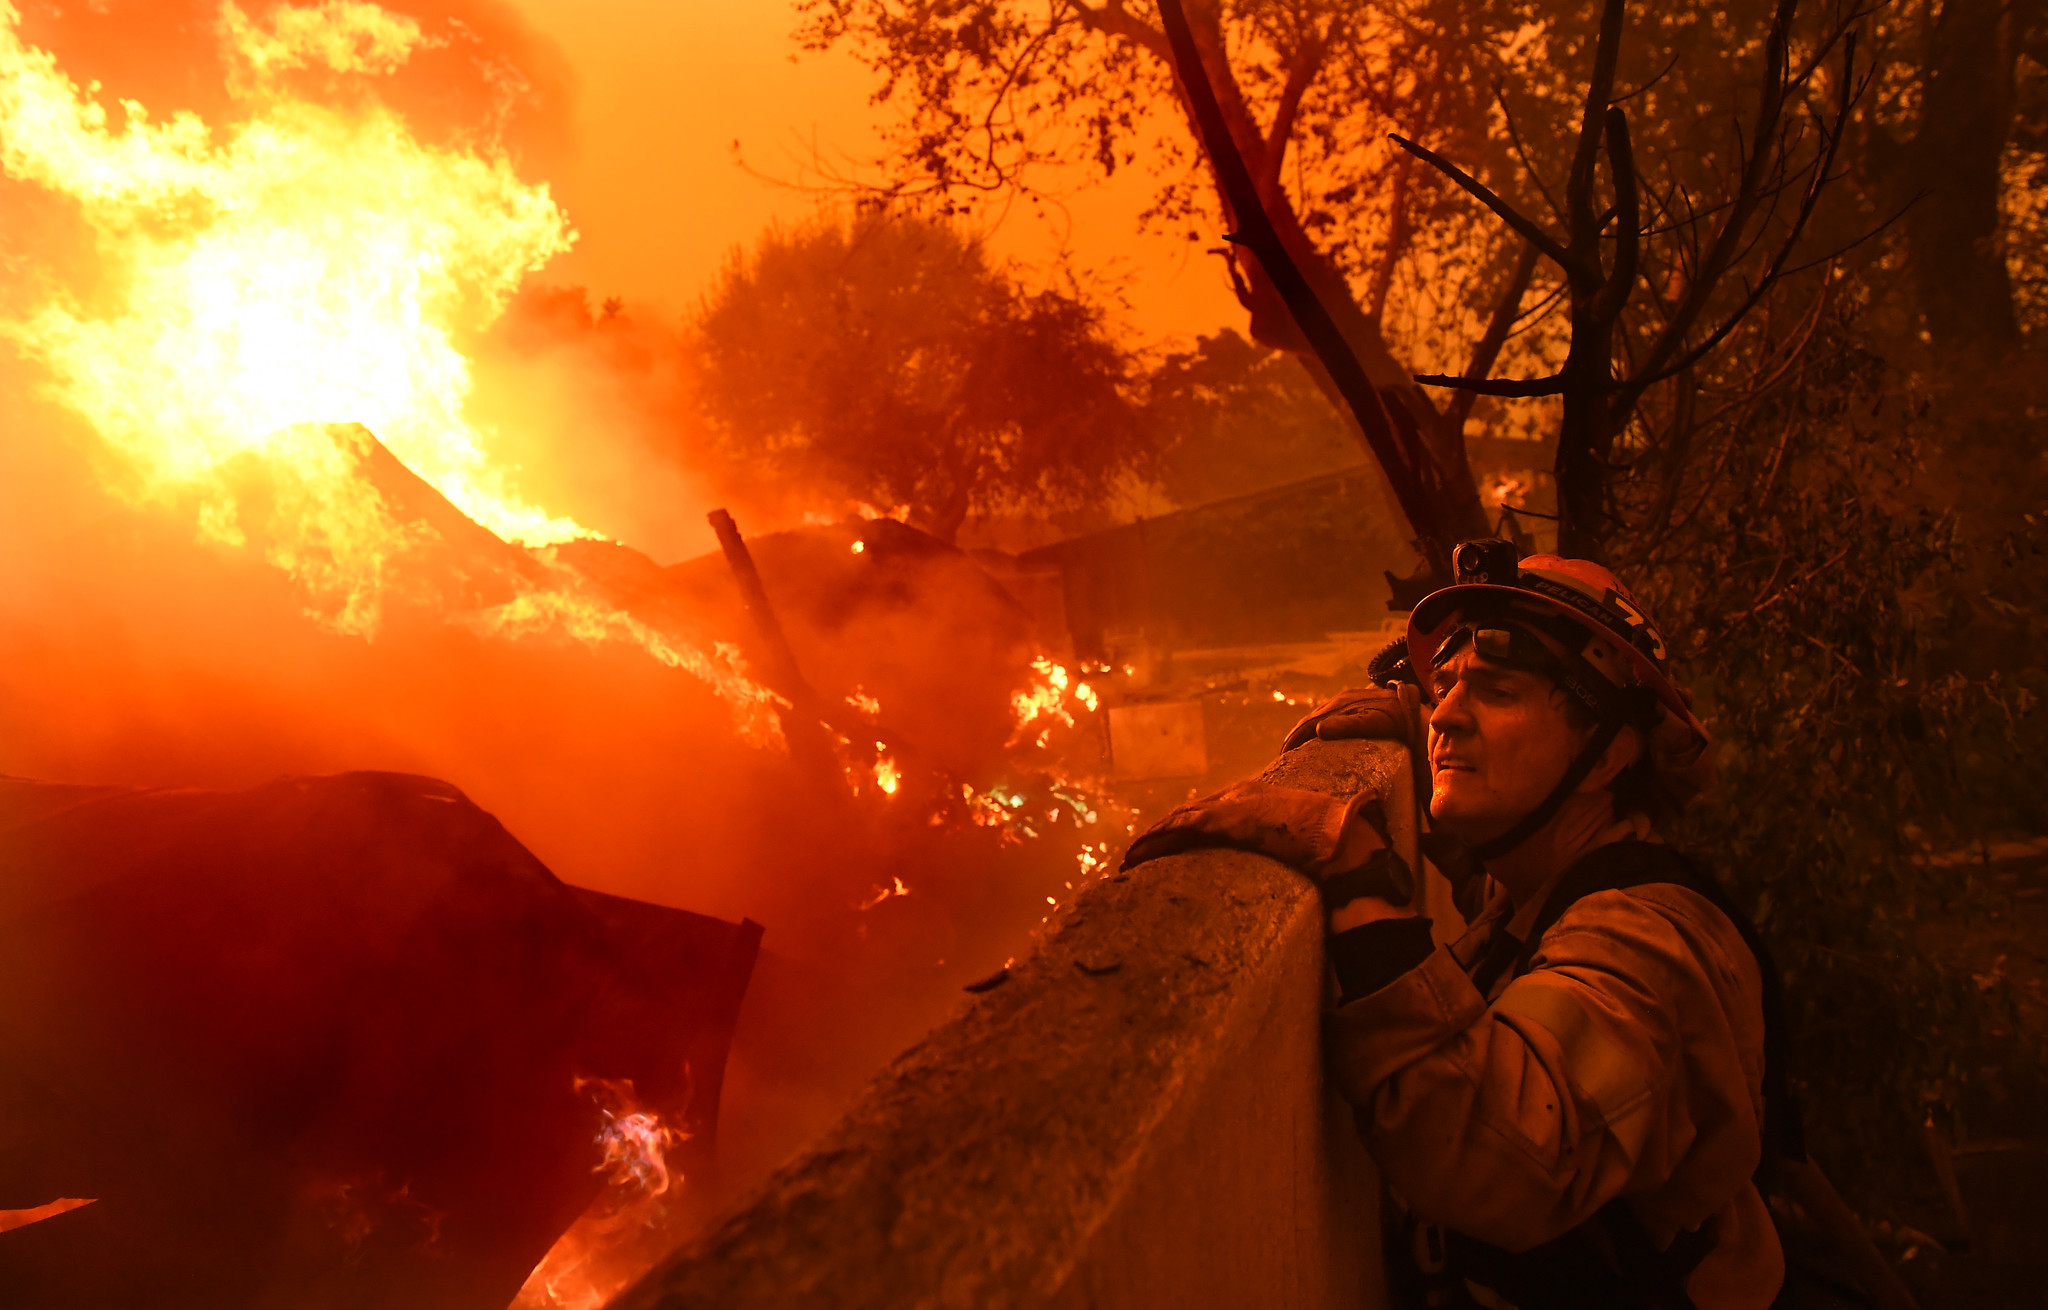 MALIBU, CALIFORNIA NOVEMBER 9, 2018-Mayor and firefighter Rick Mullen surveys a house that is on fir